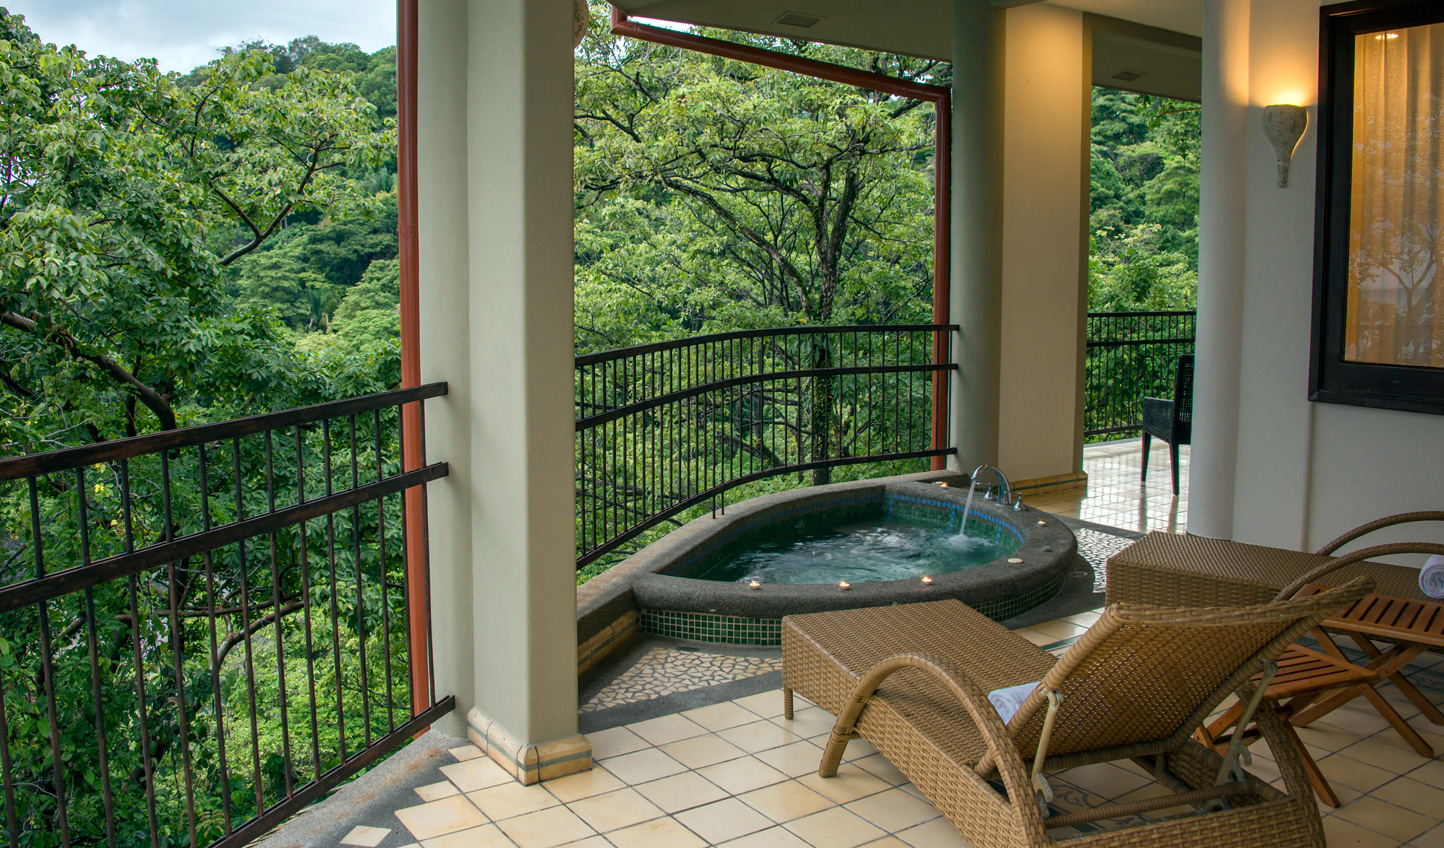 Jacuzzi in the jungle